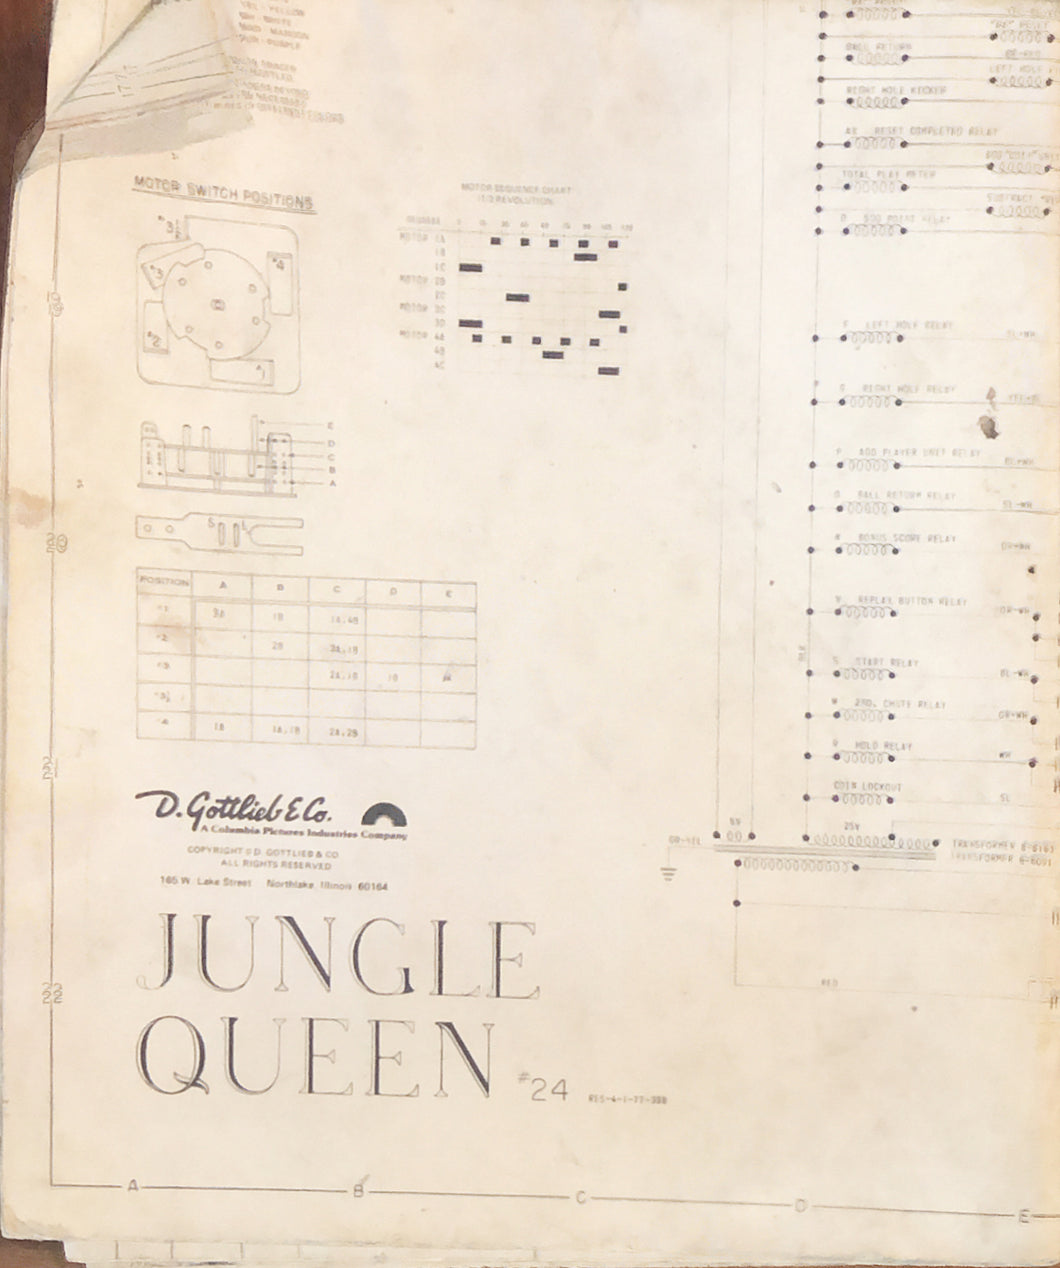 Jungle Queen Pinball  Schematic Only